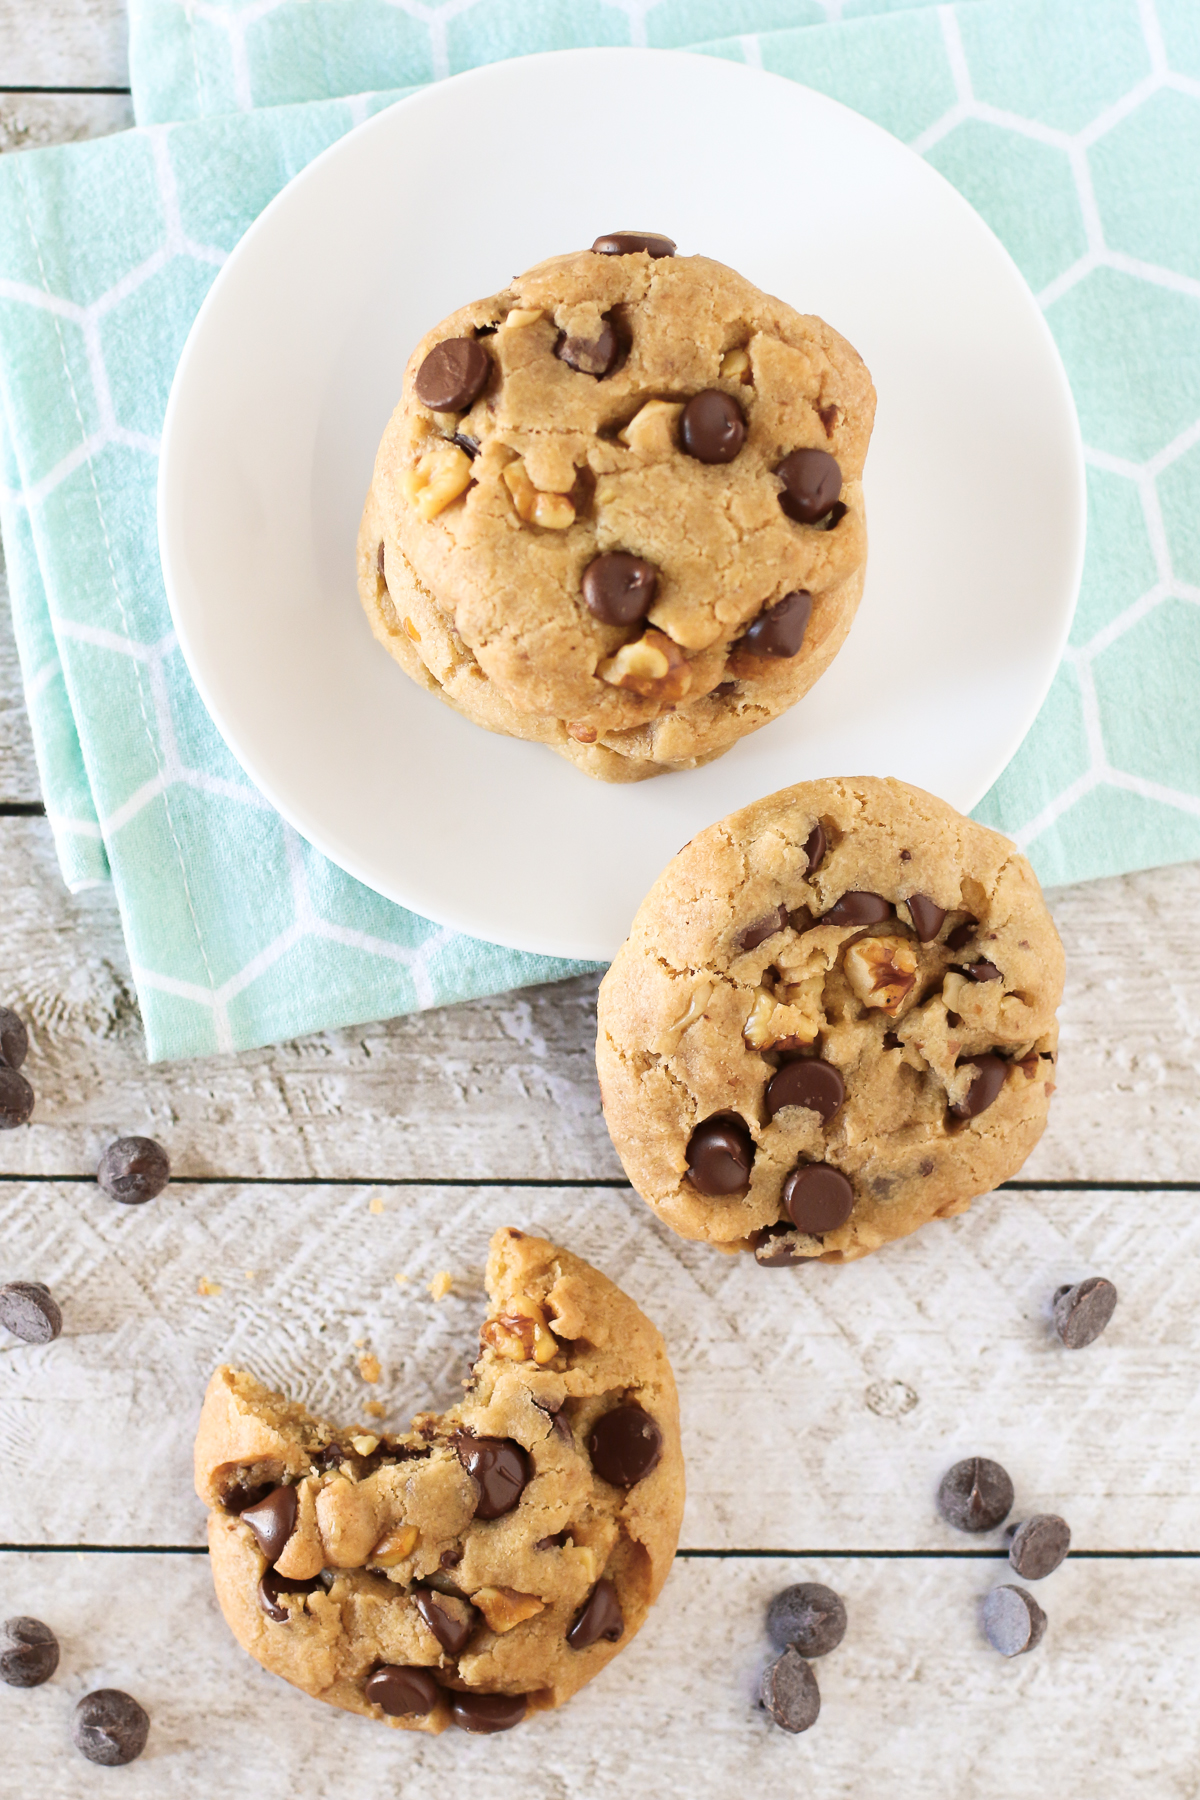 Gluten Free Vegan Chocolate Chip Walnut Cookies. Chewy, chocolatey and filled with crunchy walnuts. Just like grandma used to make them!